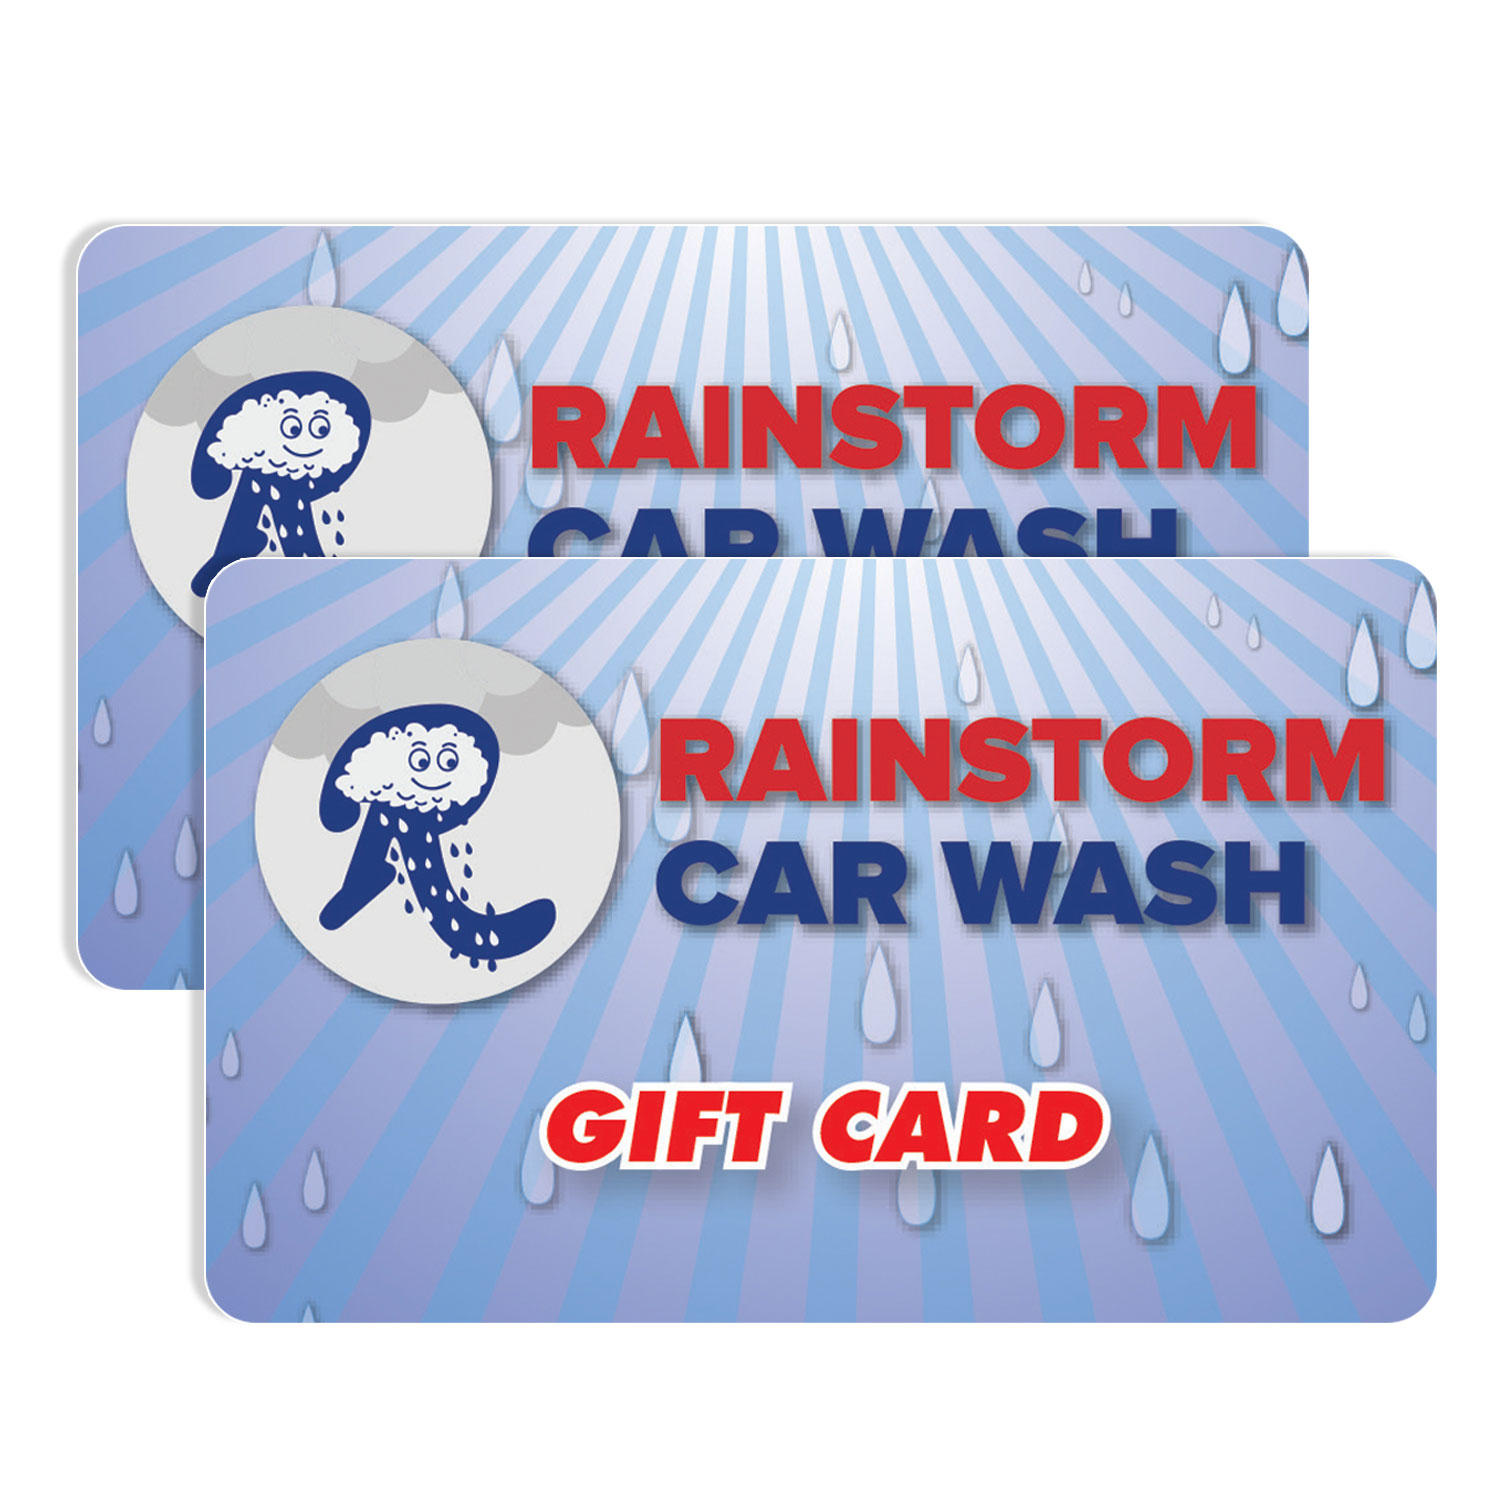 $50 (2 x $25) Rainstorm Express Car Wash Gift Cards